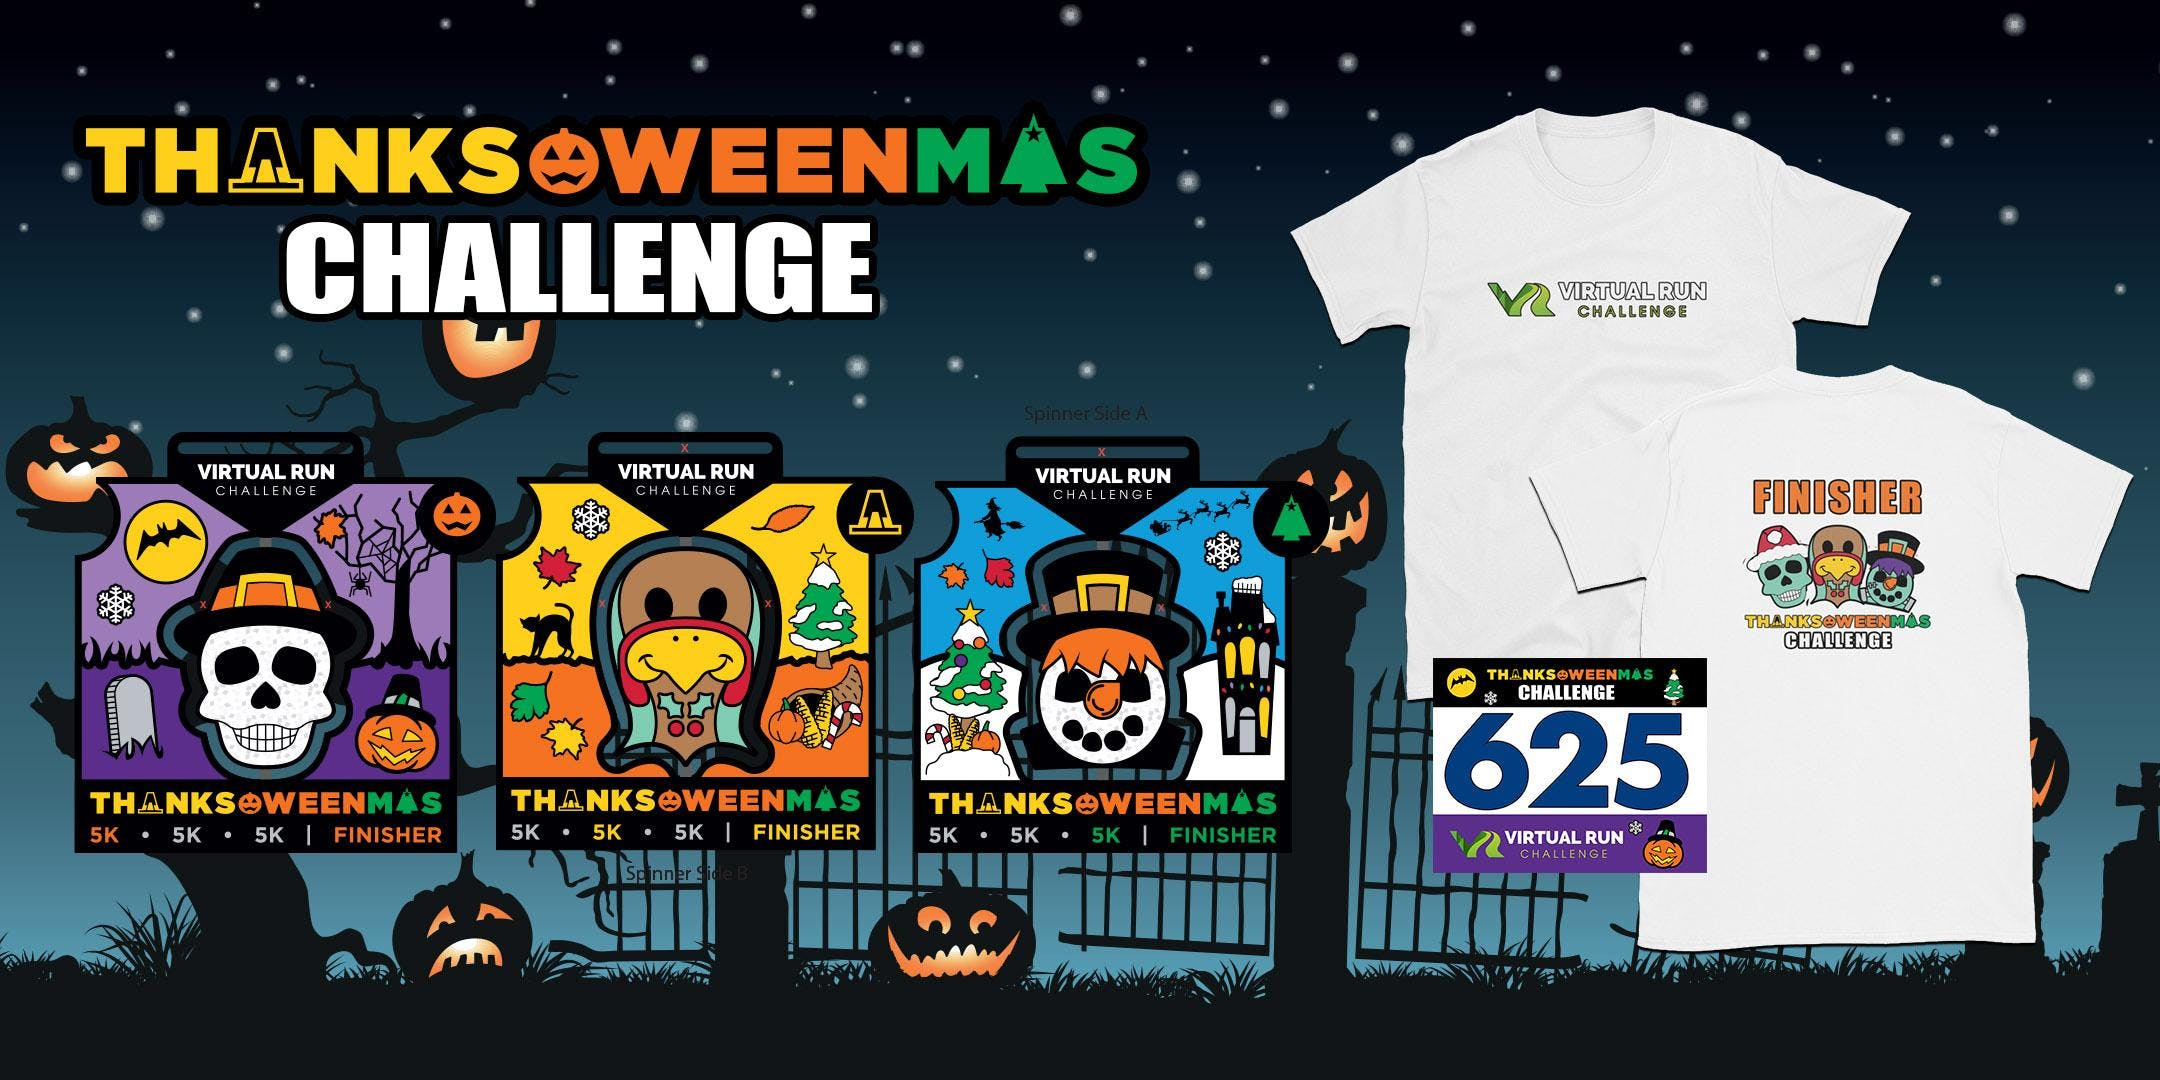 2019 - Thanks-Oween-Mas Virtual 5k Challenge - Glendale